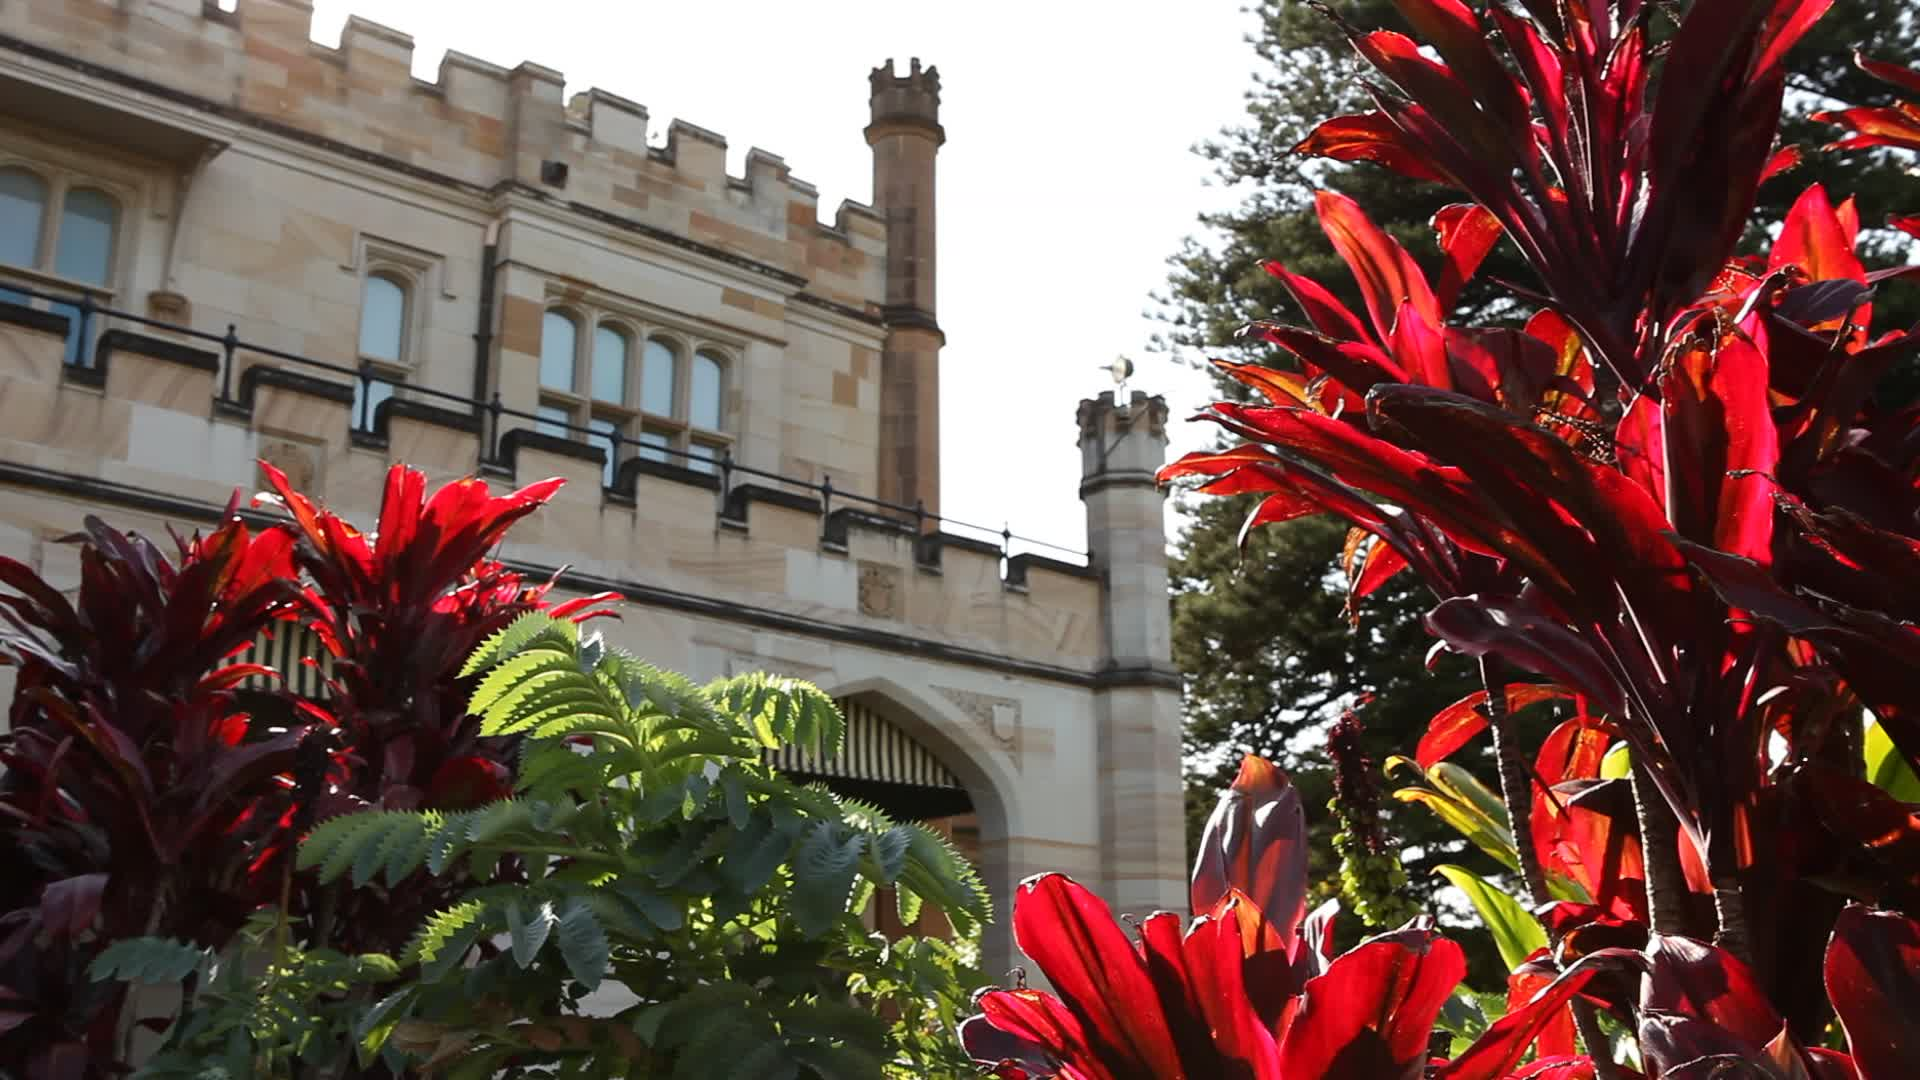 View of Government House through foliage and red flowers.